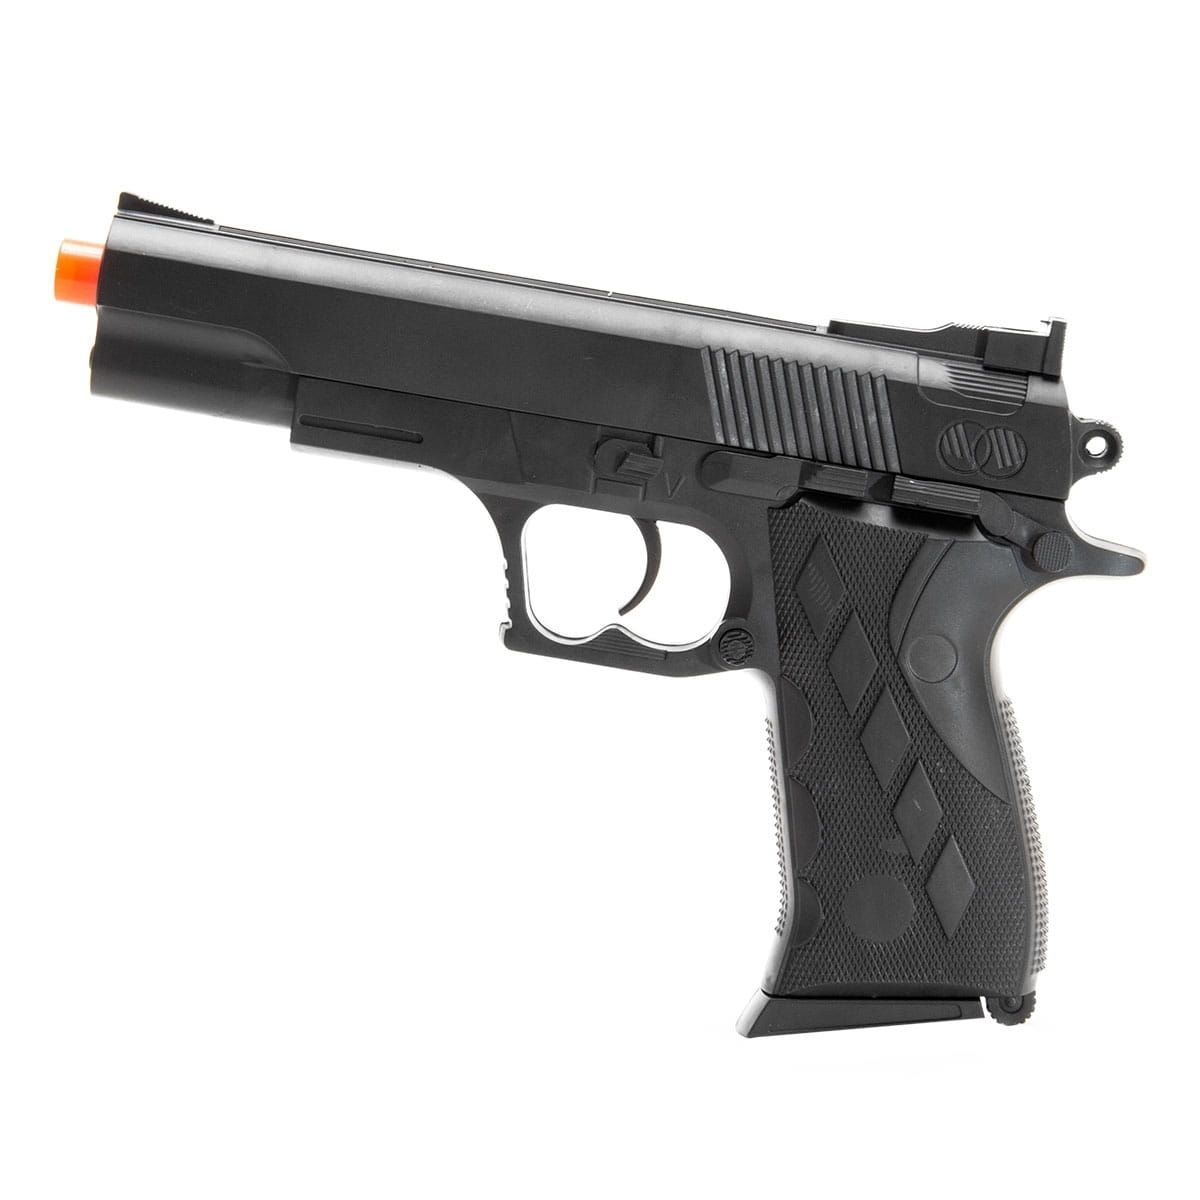 PISTOLA AIRSOFT ROSSI MOLA PP VG 1911 SW 2122A1 6MM